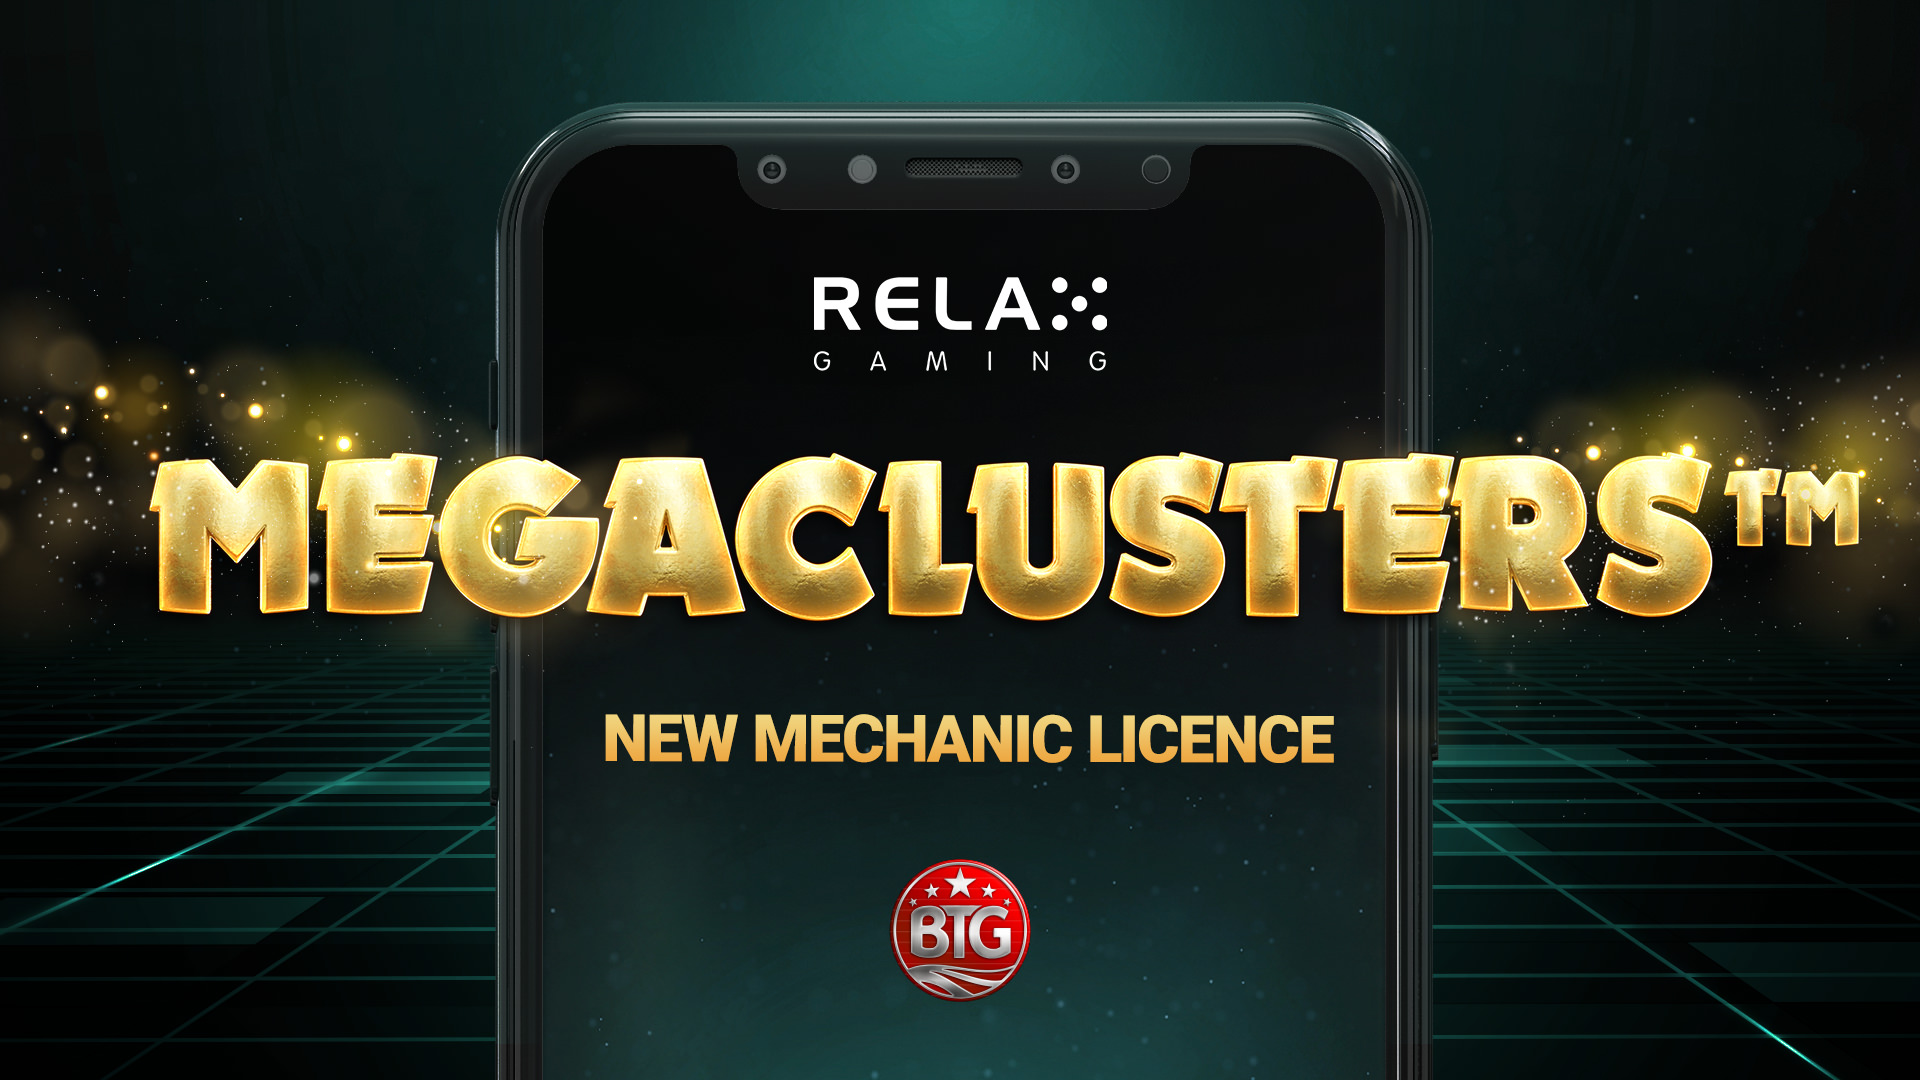 Relax Gaming first to gain rights to Big Time Gaming's Megaclusters™ with 12 months exclusivity